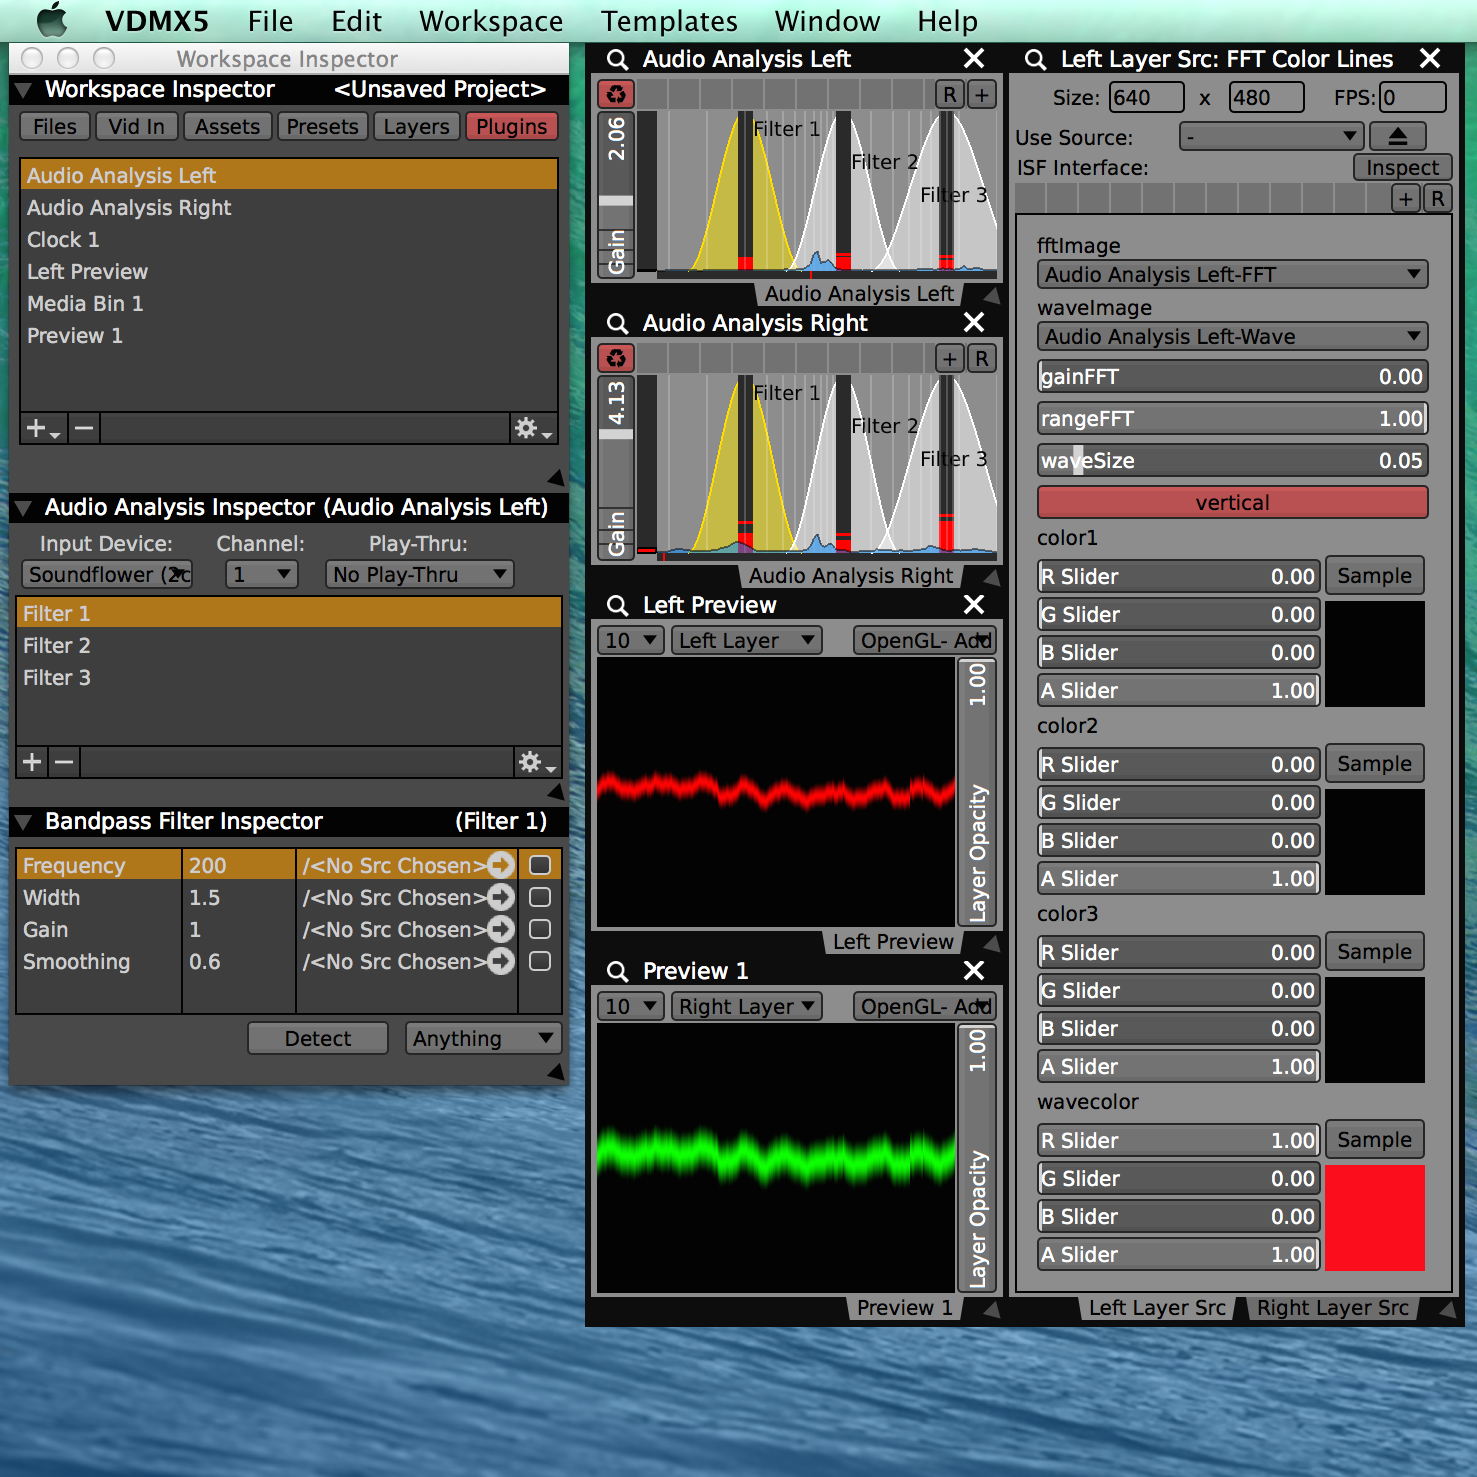 Multiple audio analysis plugins can be used to visualize different devices and channels.